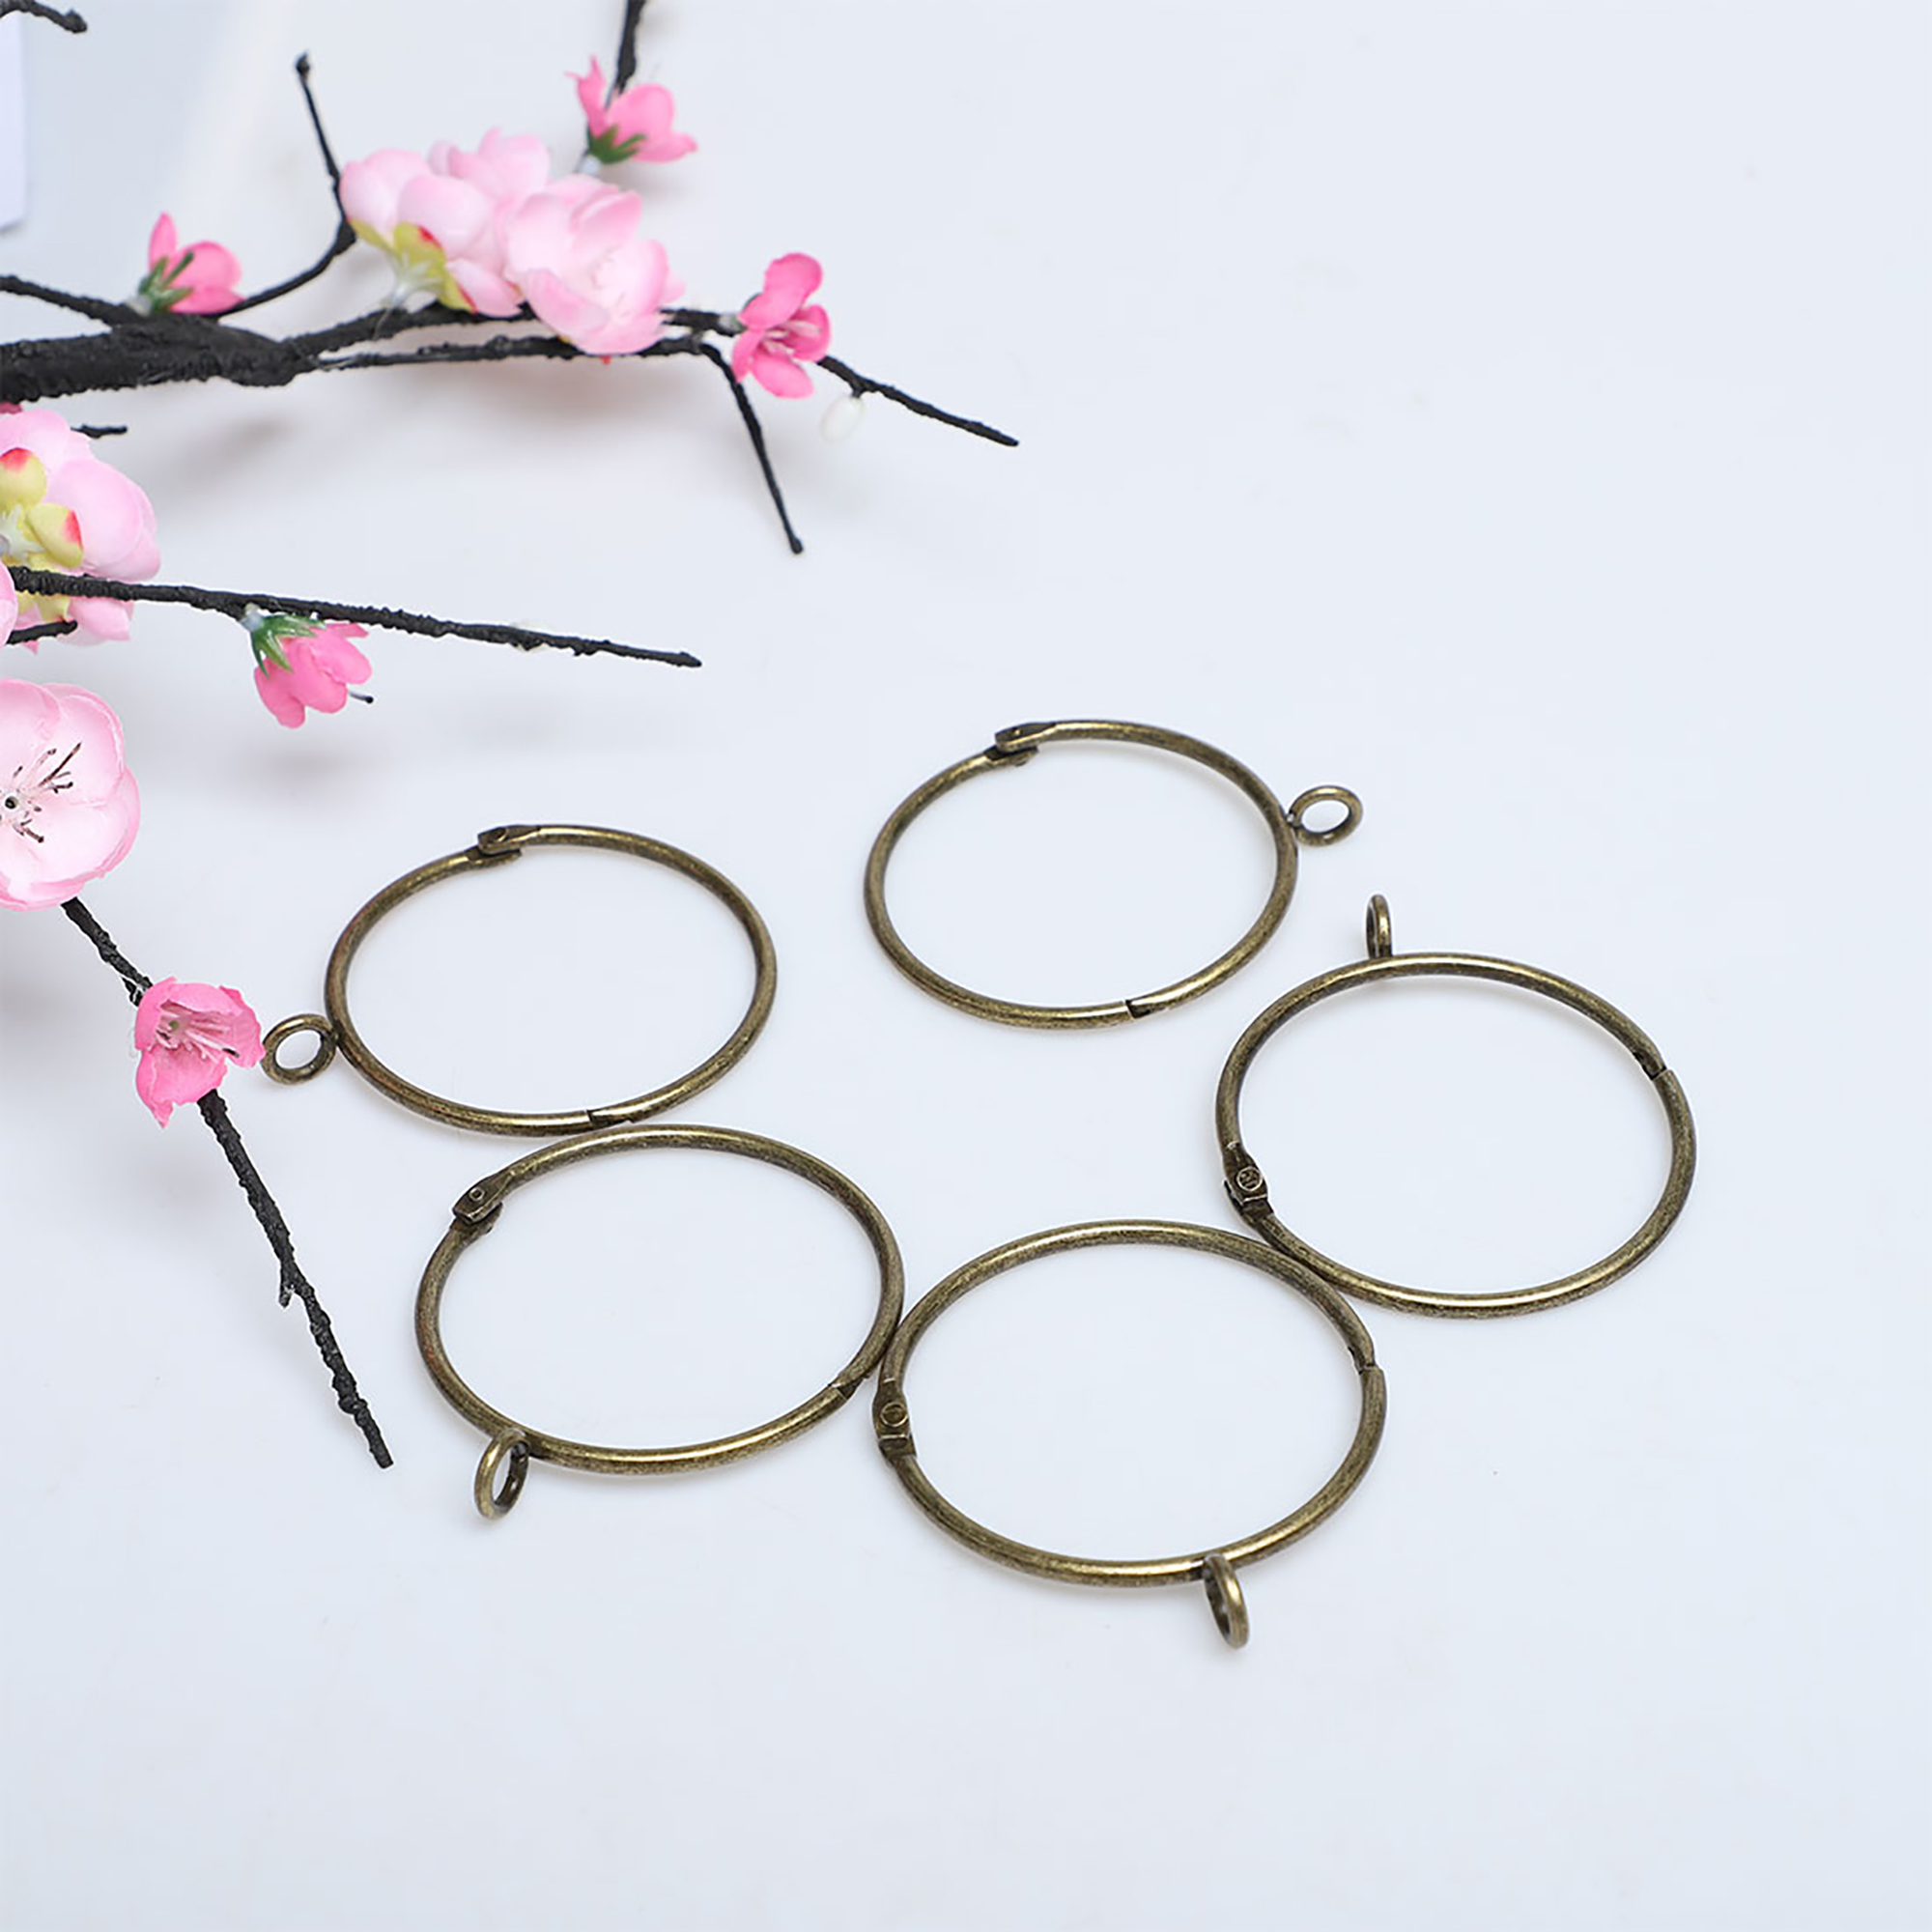 """Rings For Curtain Rods, 2"""" Metal Curtain Ring With Eyelets"""